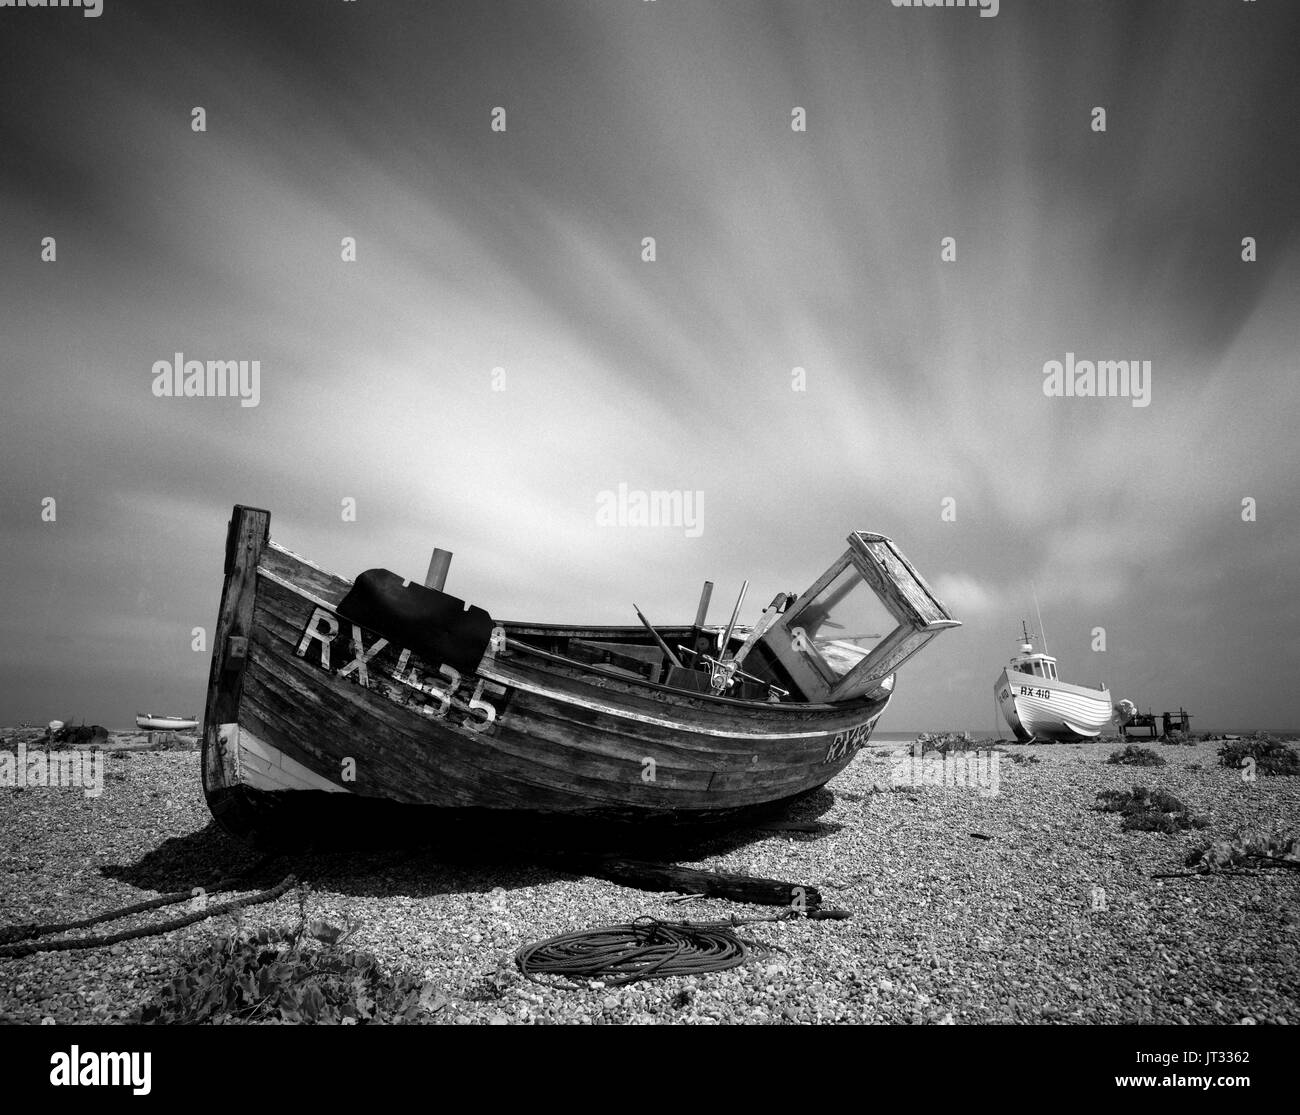 Old Fishing Boats On Beach: An Old Fishing Boat In Need Of Repair On The Shingle Beach